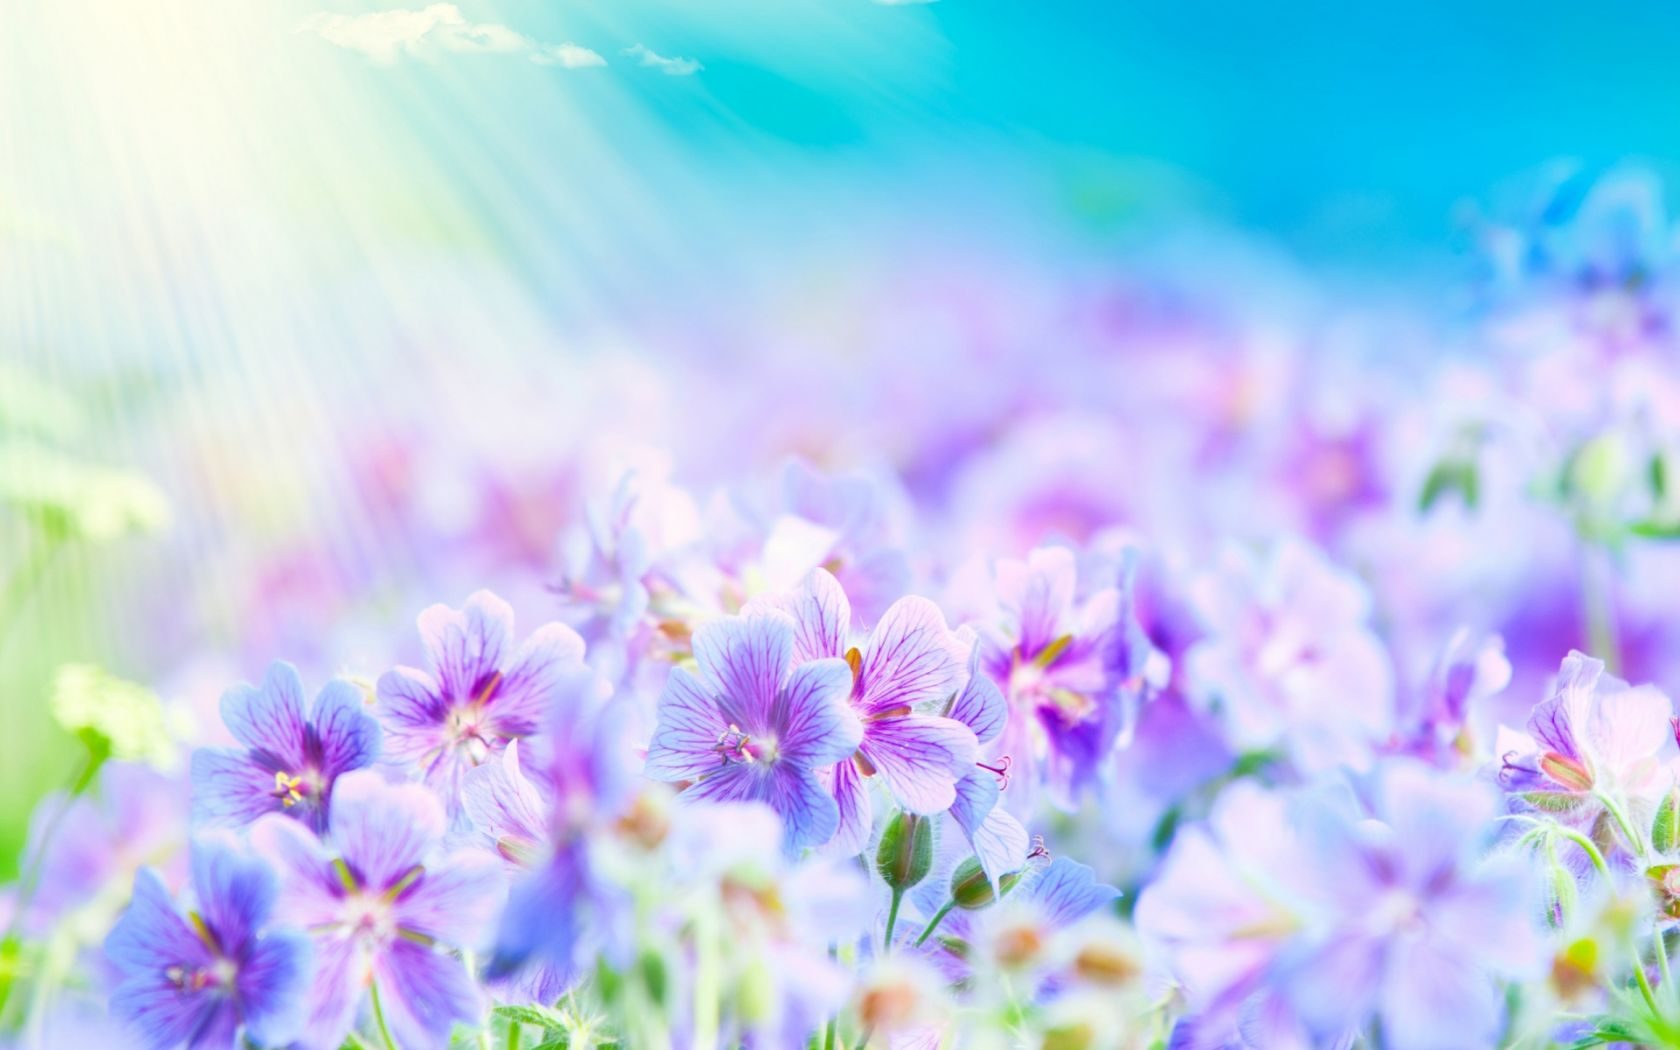 Beautiful Summer Flowers Wallpaper High Resolution Is Cool Wallpapers